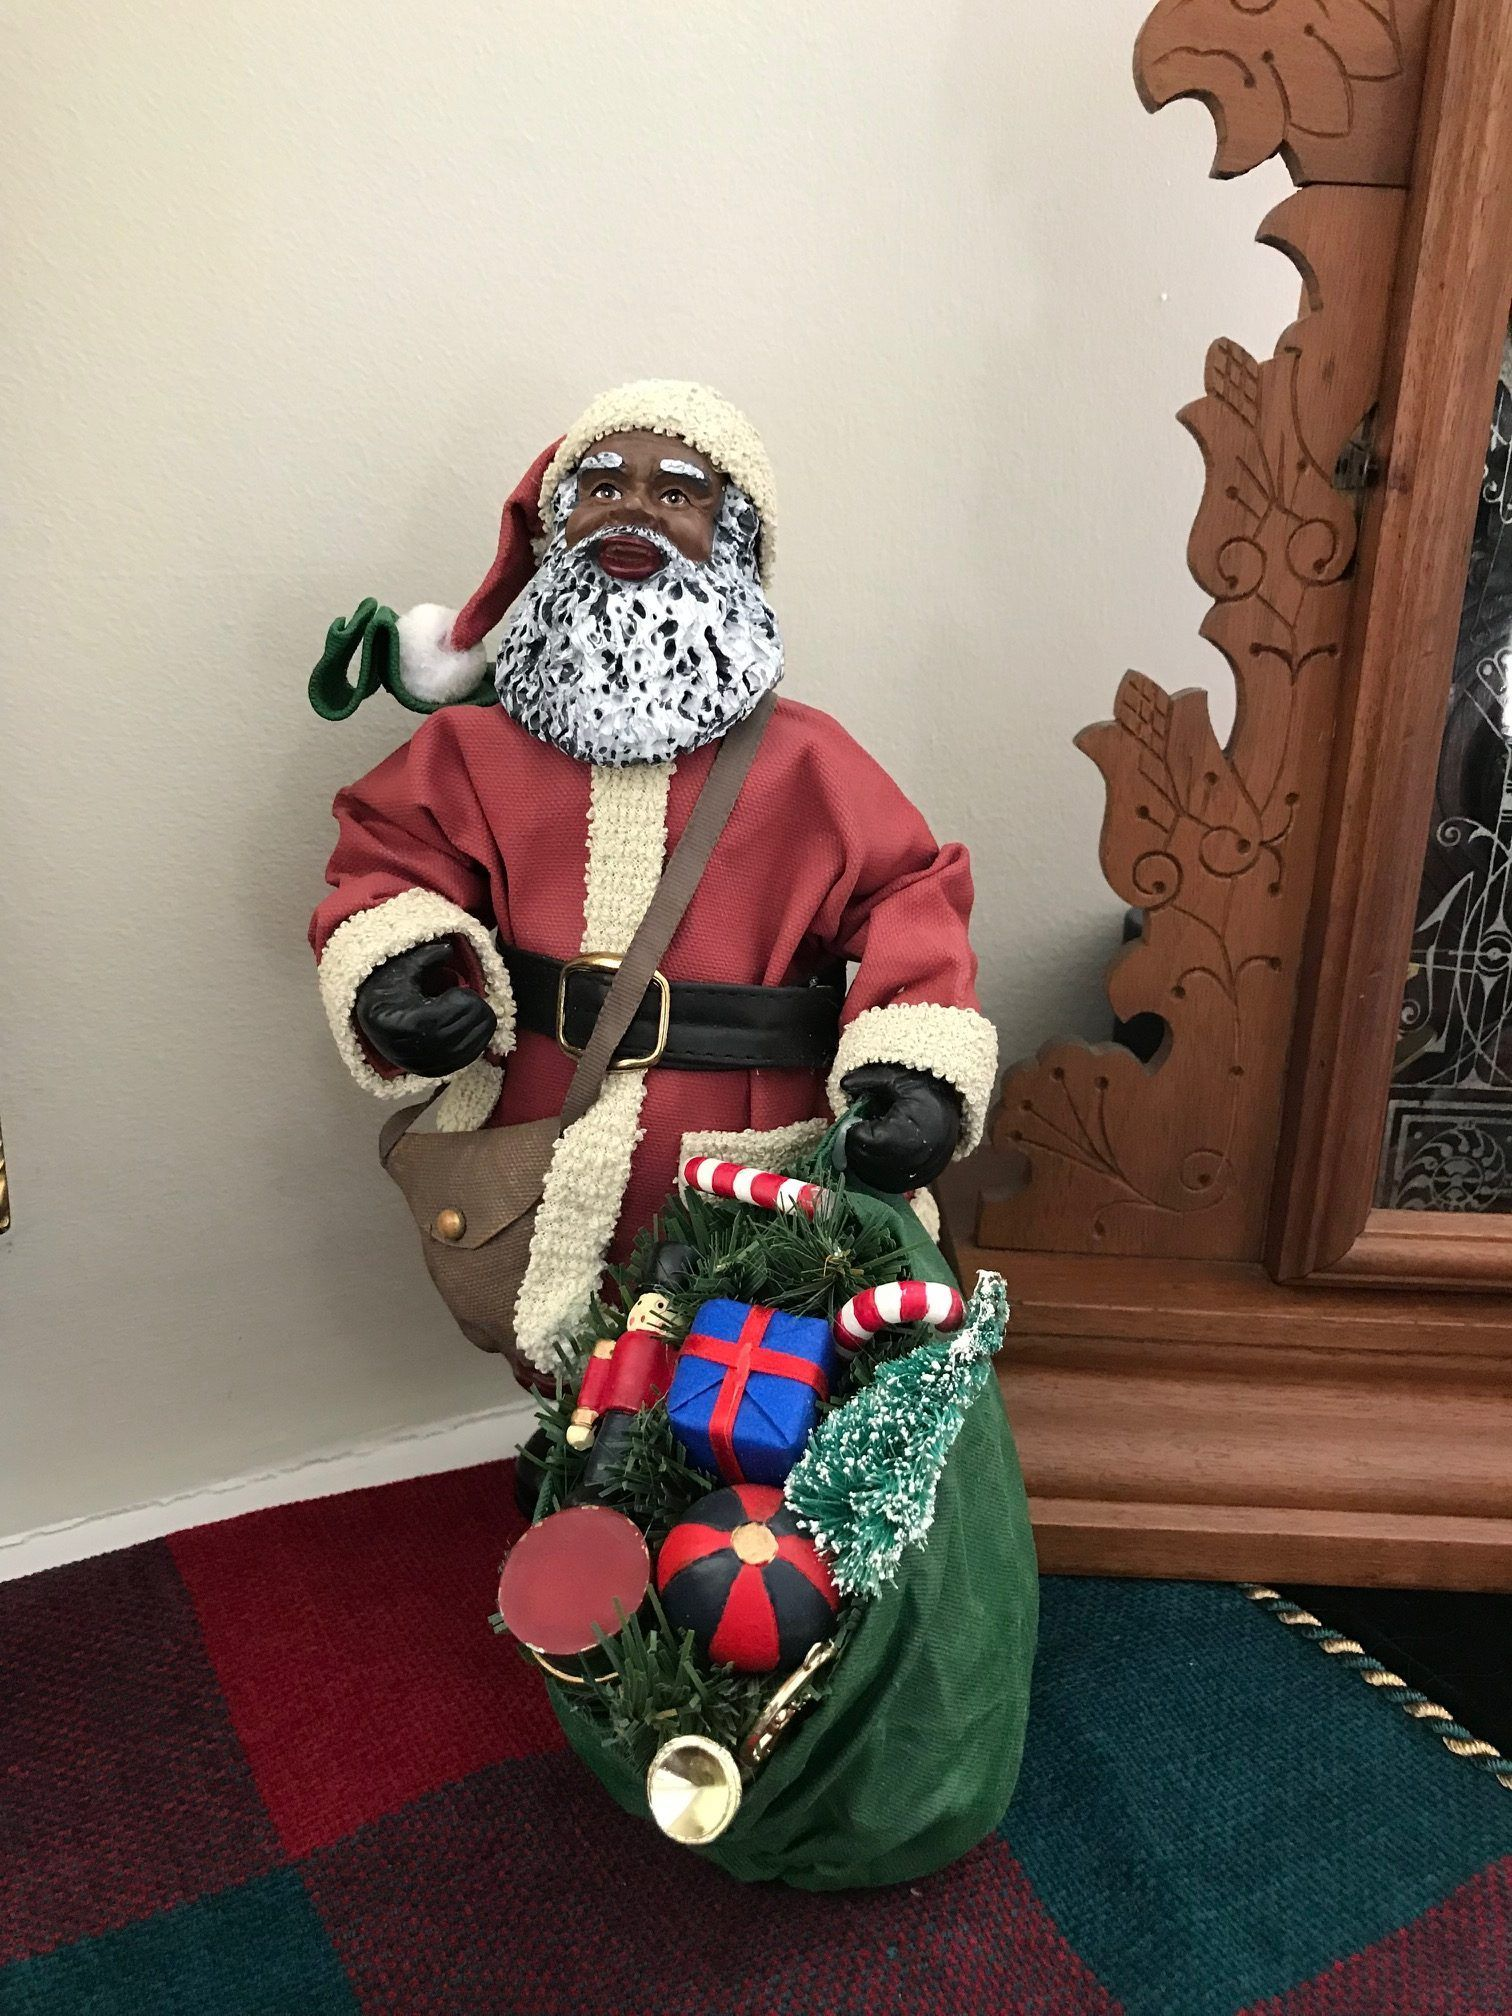 Christmas In Africa Traditions.African American Holiday Traditions Black Santa In Upstate